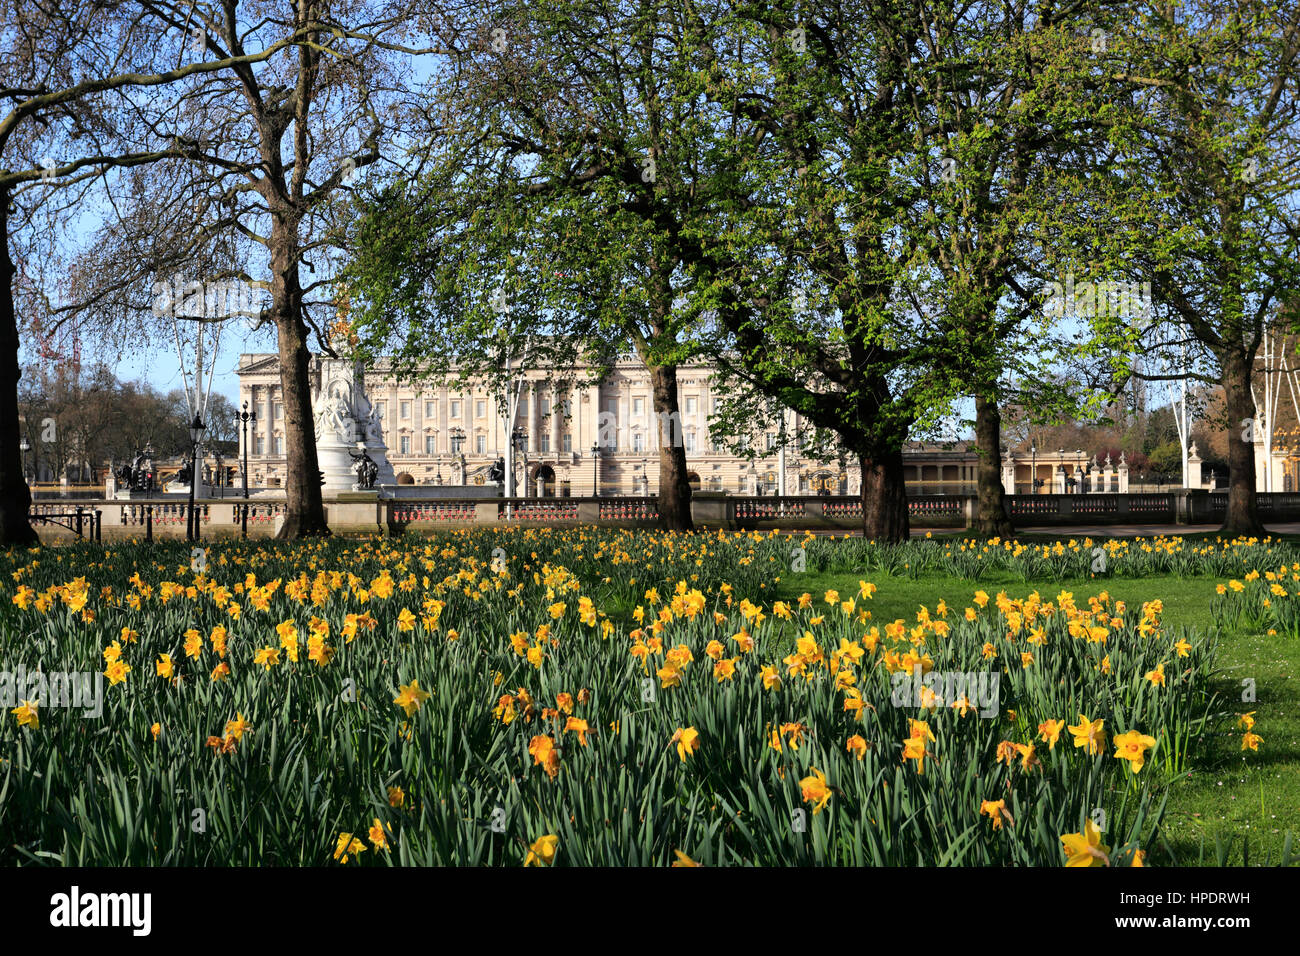 Spring Daffodils, frontage of Buckingham Palace, St James, London, England, UK - Stock Image